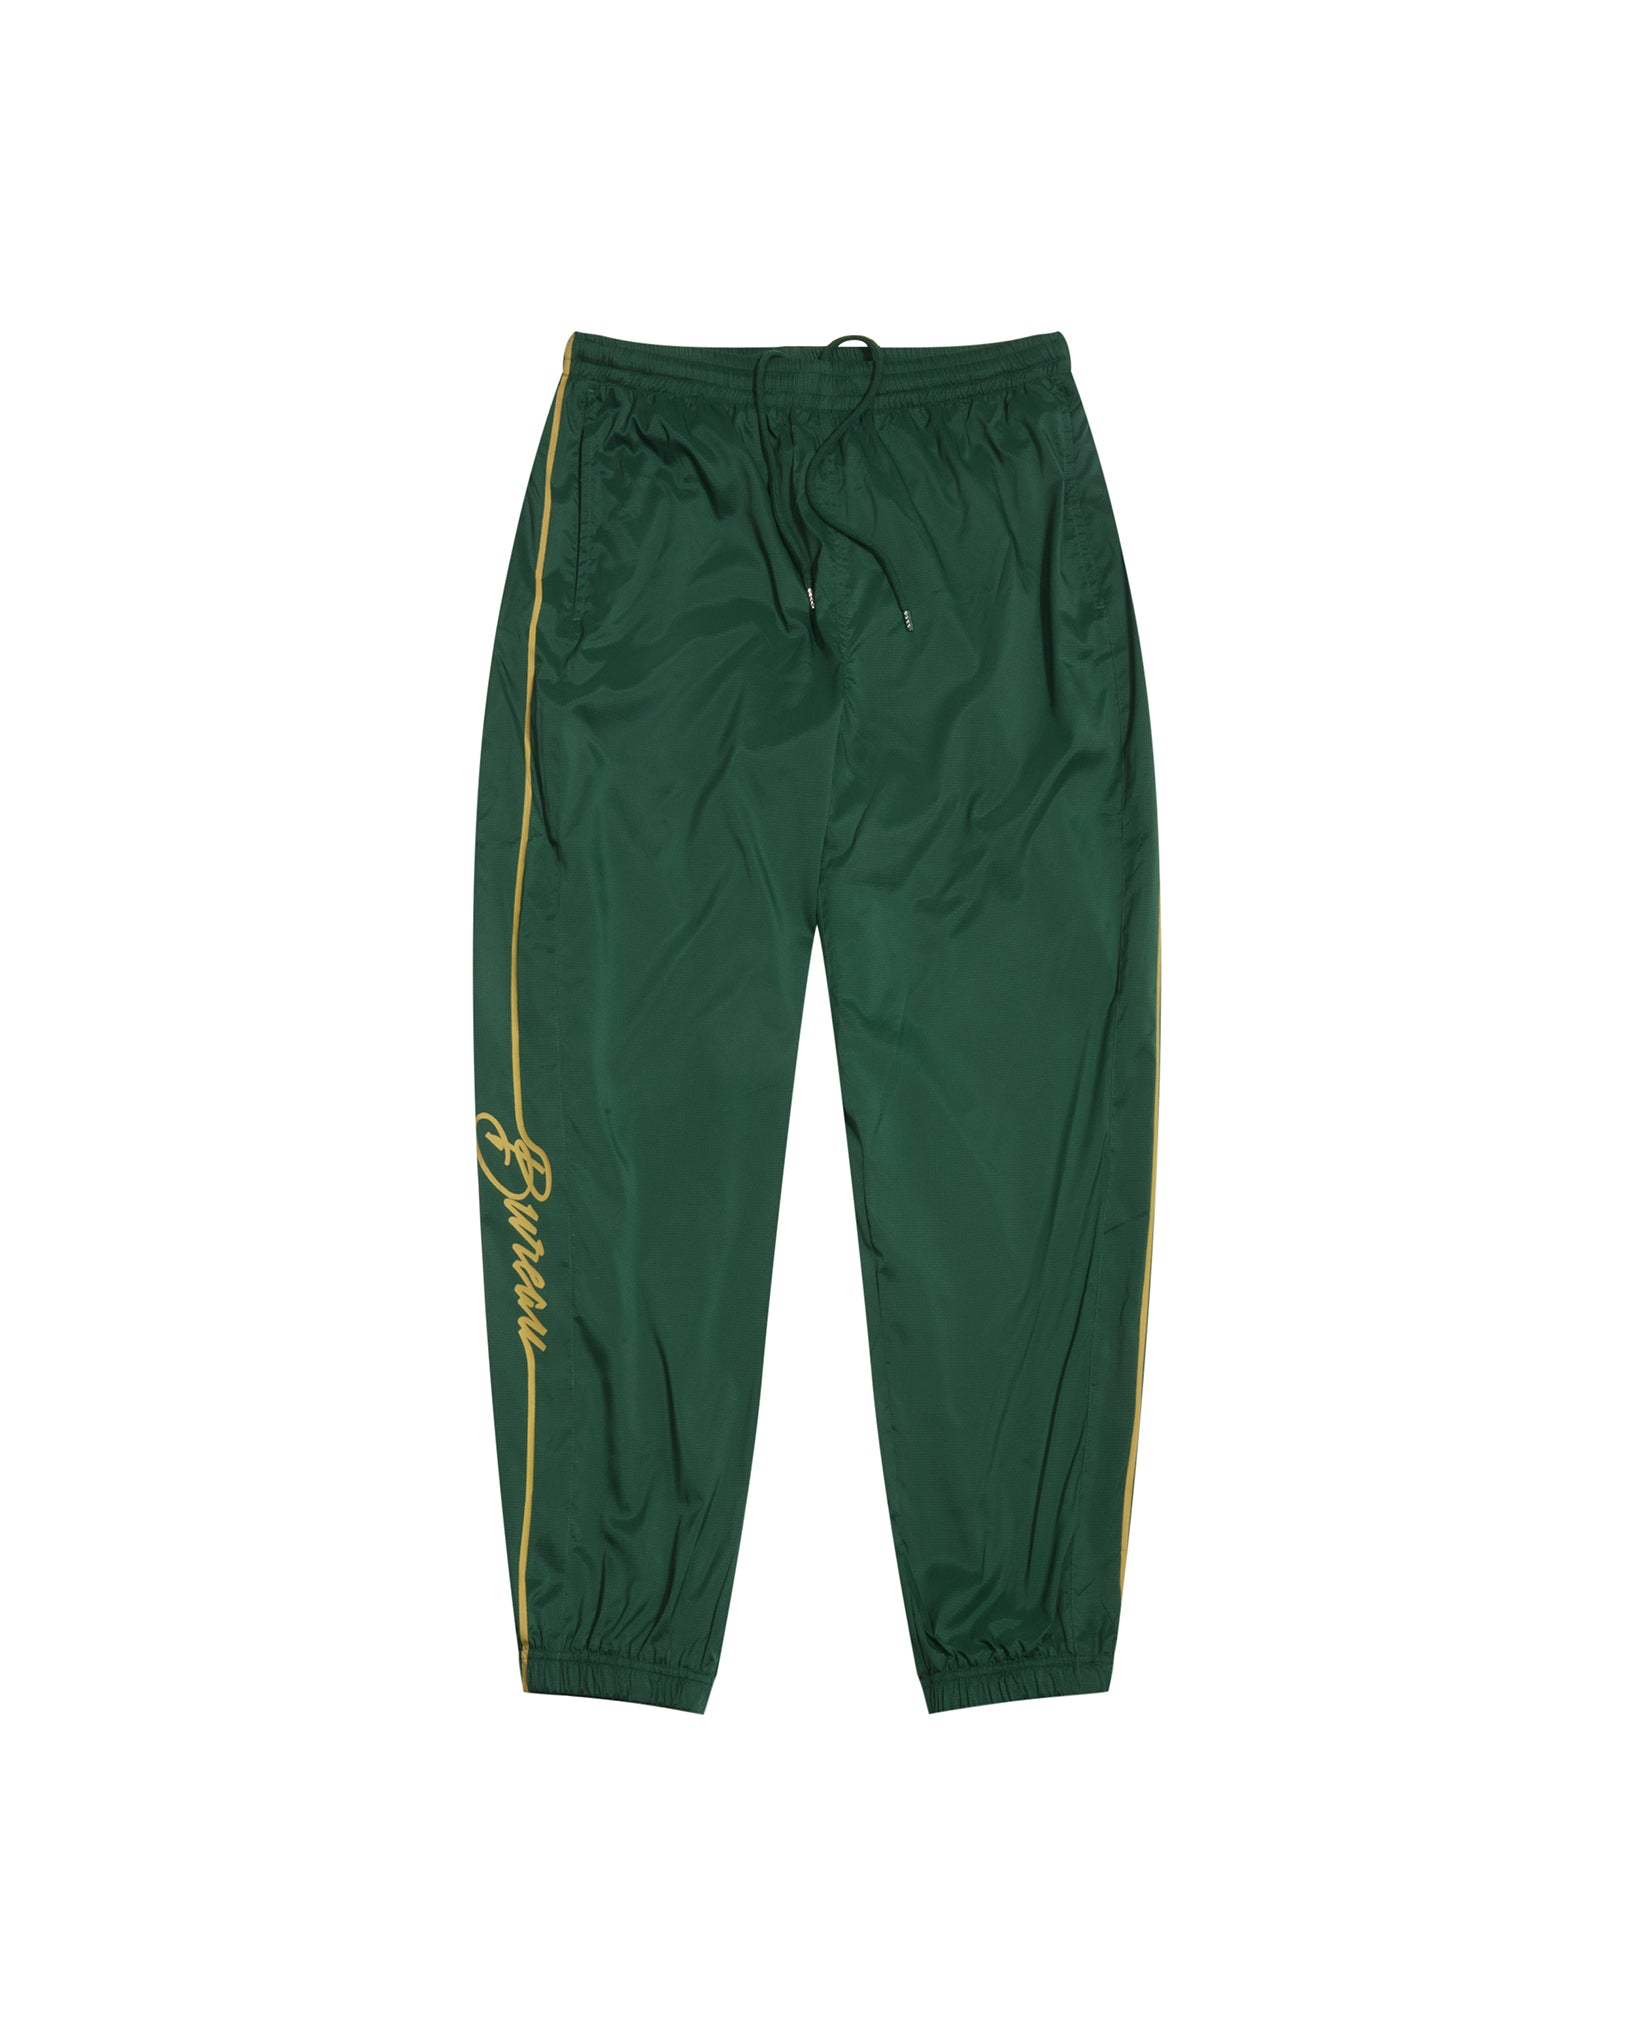 Dark Green Men's Track Pants